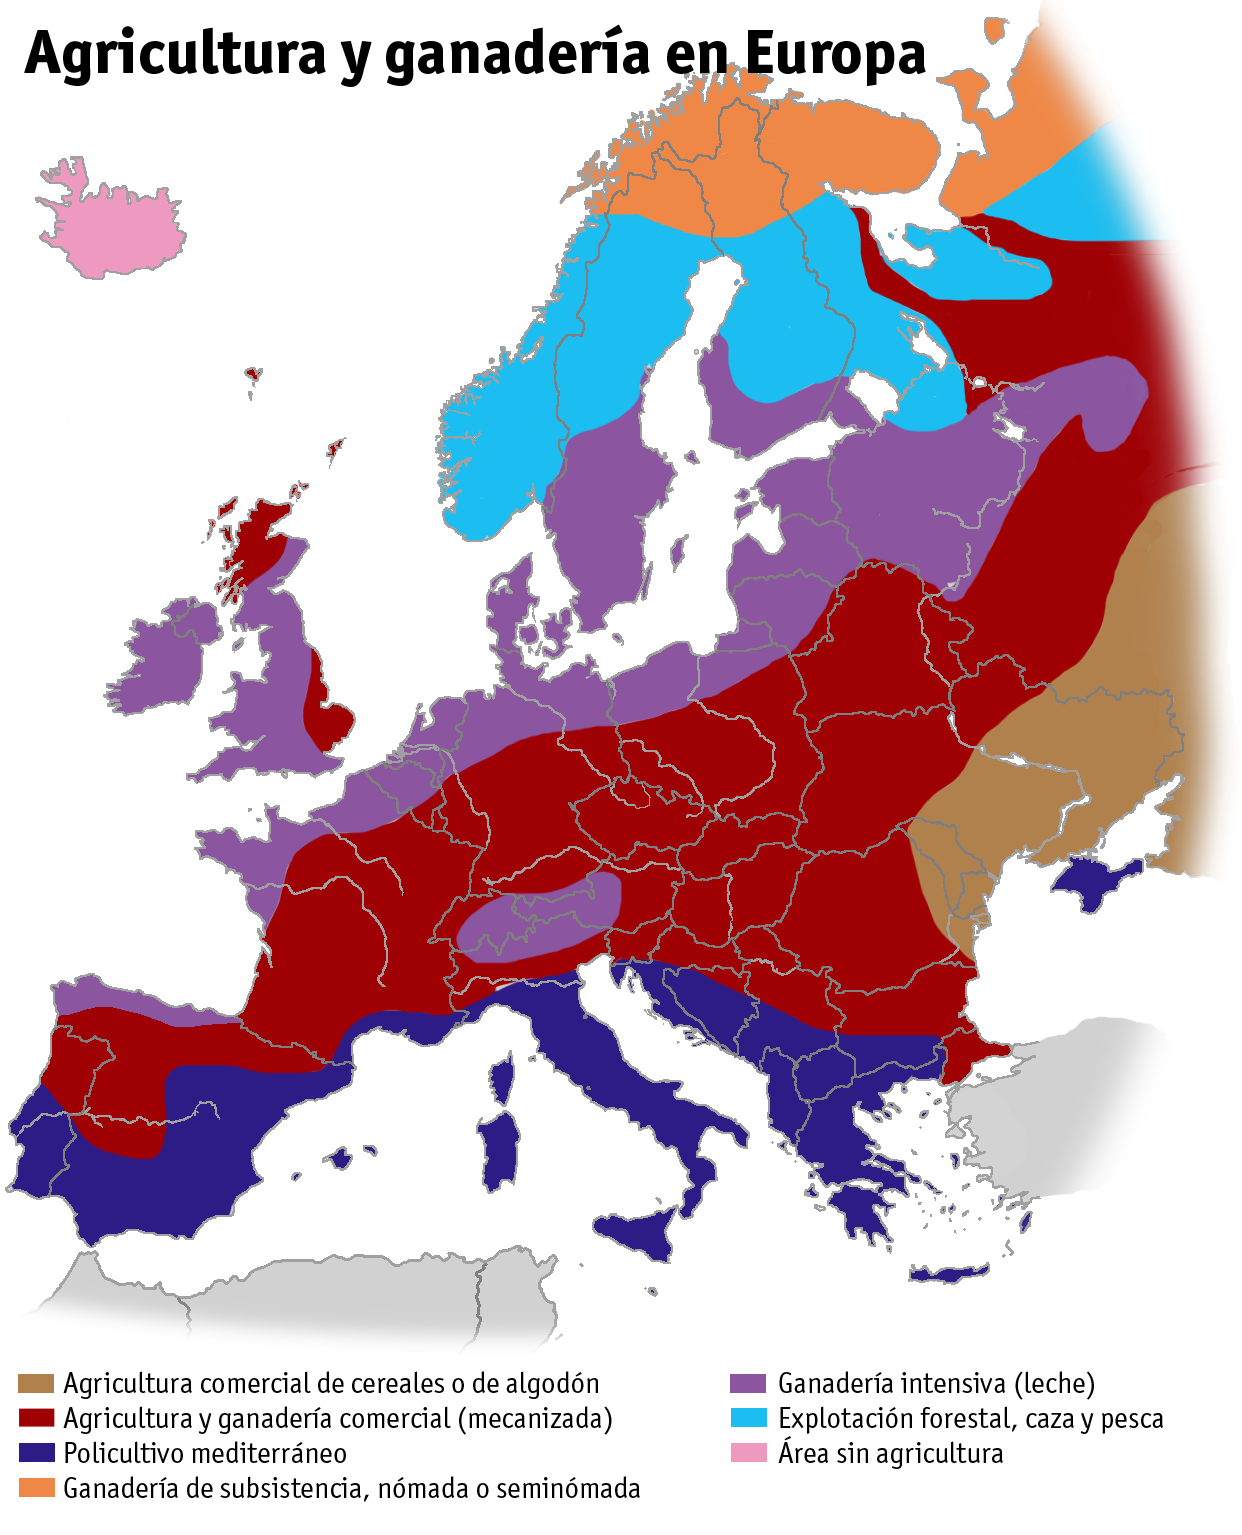 Agriculture and livestock in Europe 2005